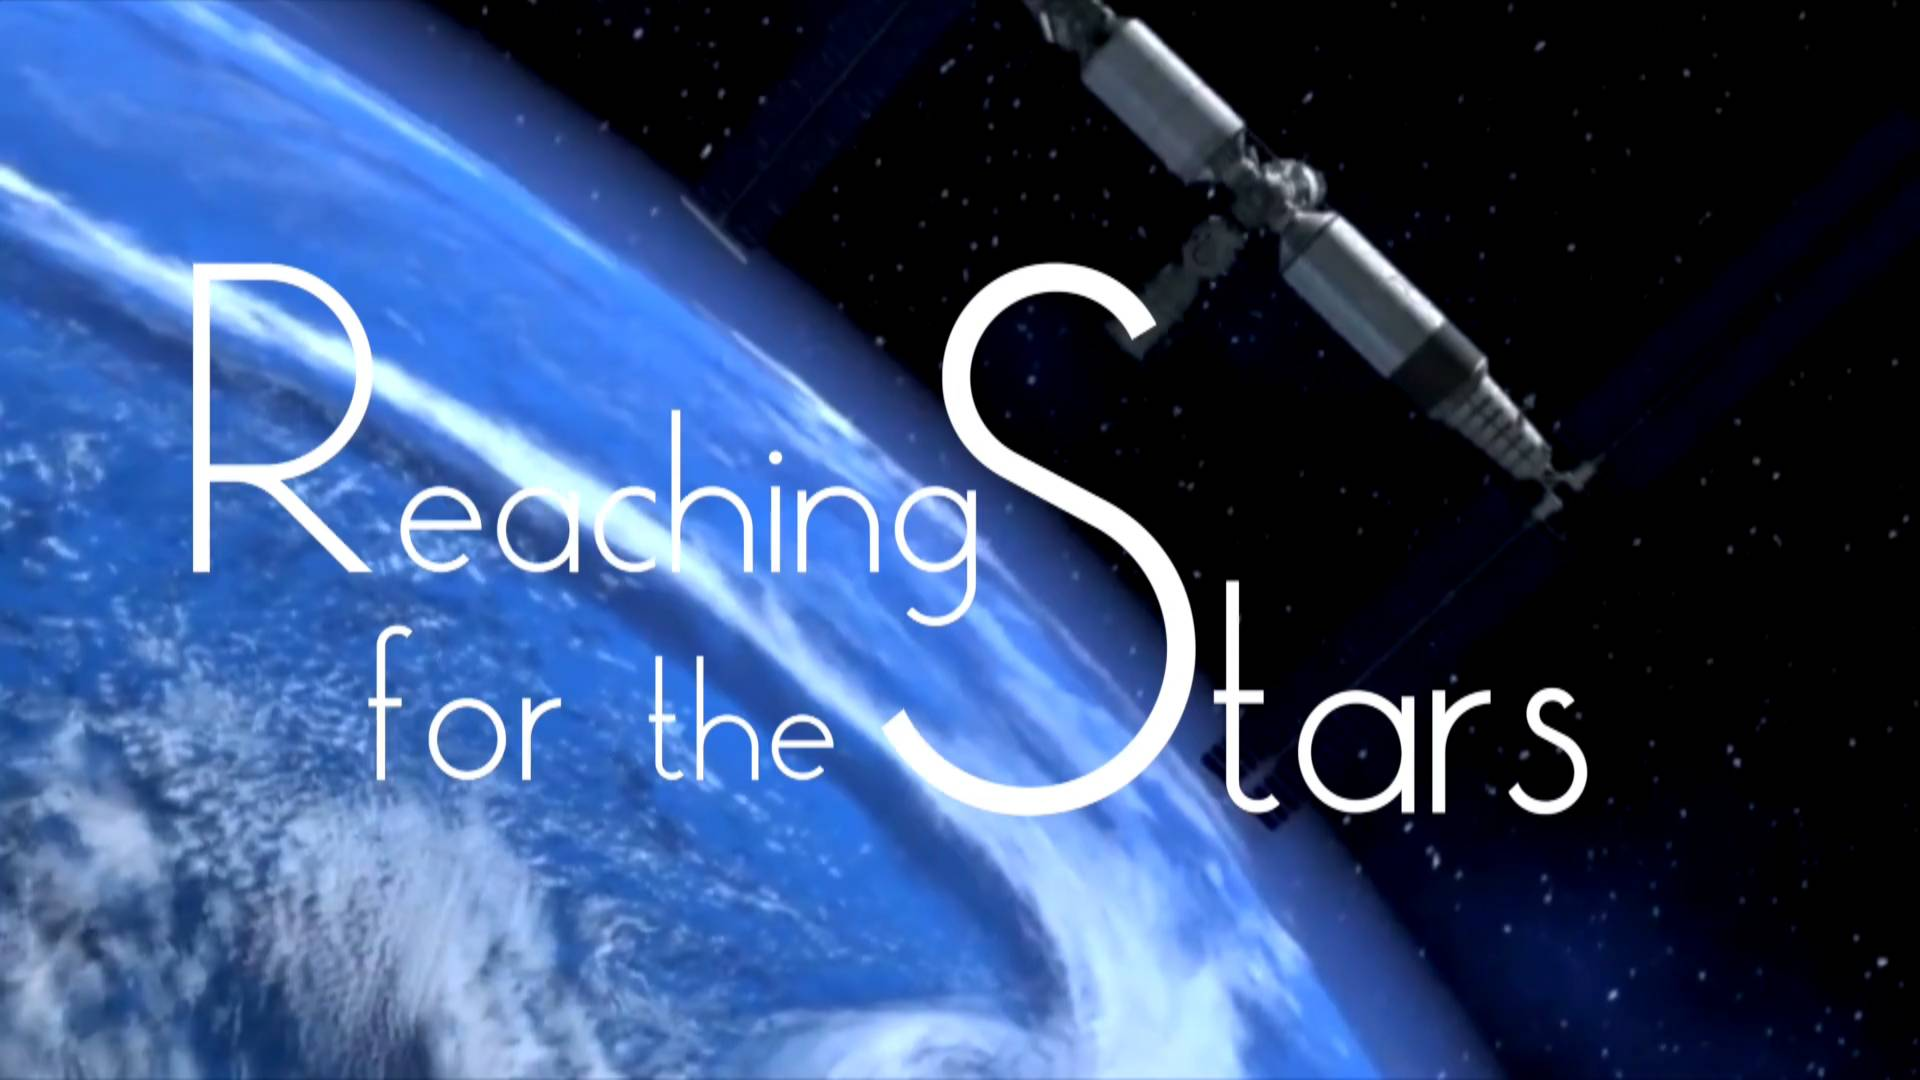 GLOBALink | Reaching for the Stars